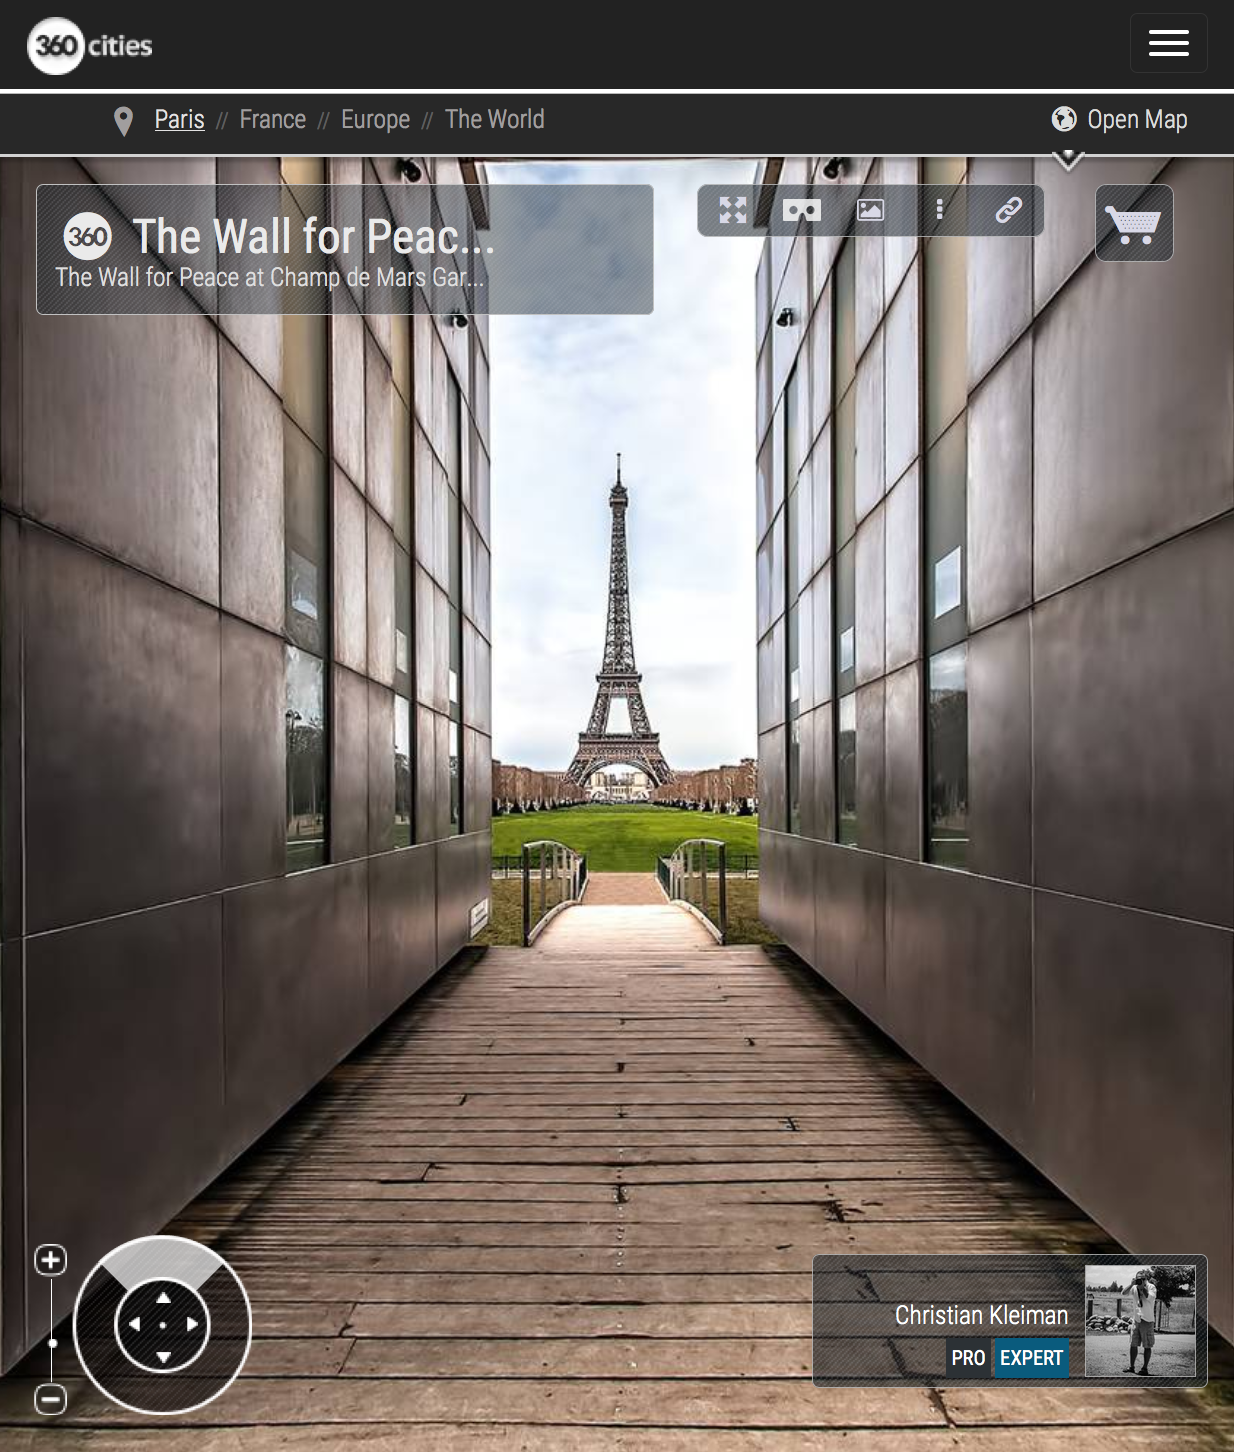 The Wall for Peace - Winter at Champ de Mars Garden - 360 VR Spherical Panoramic Photography from emblematic places in Paris by © Christian Kleiman